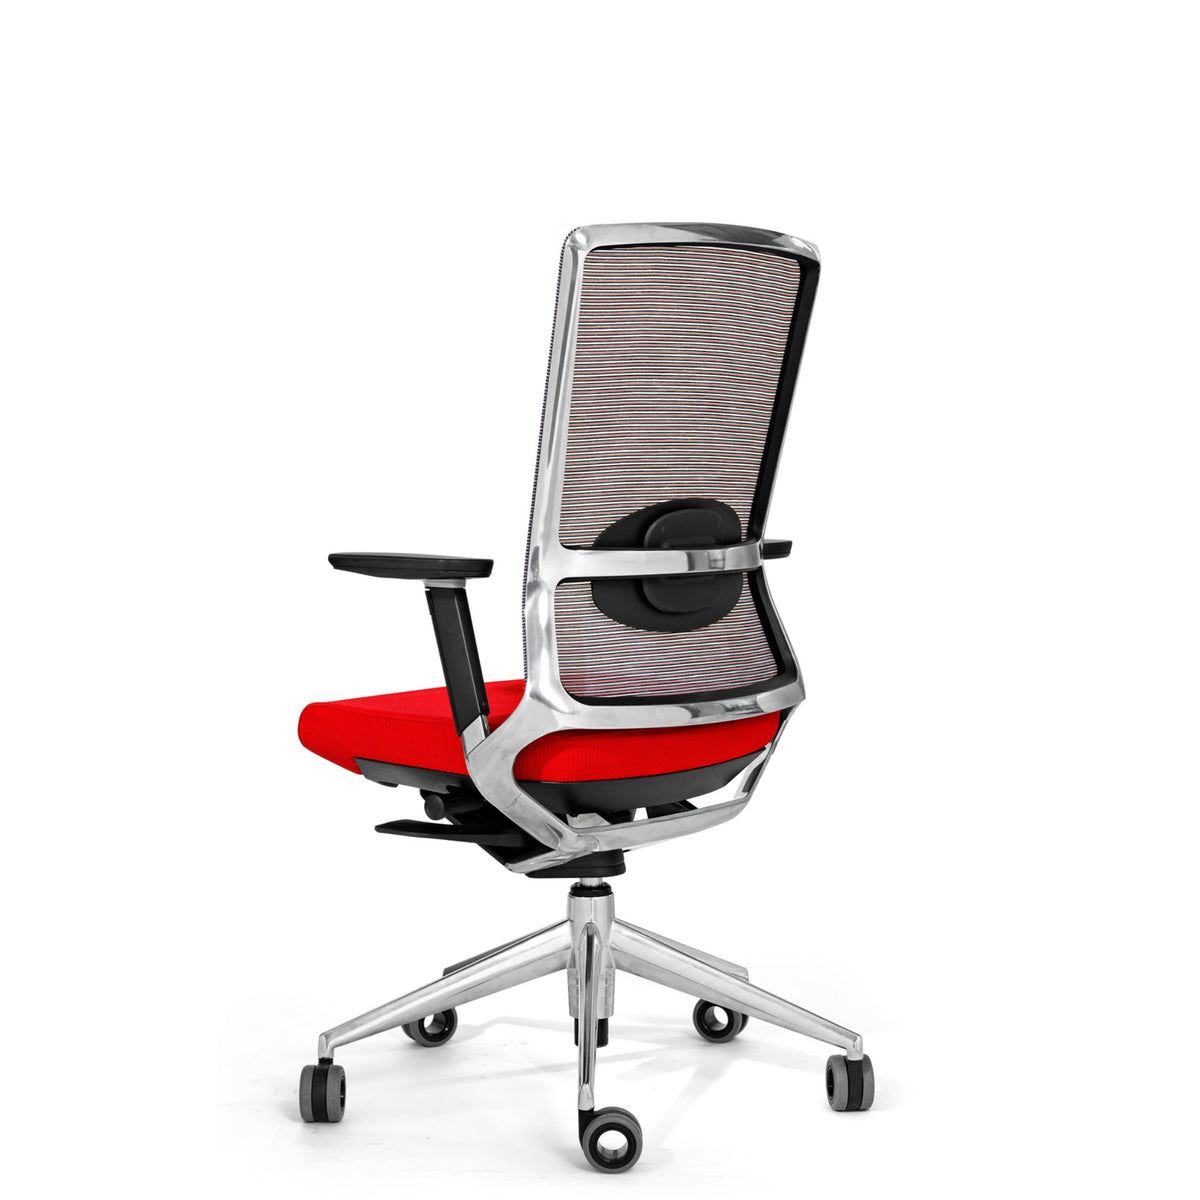 Actiu Office TNK 500 Task Chair - Mesh Back Red with Polished Aluminium Frame